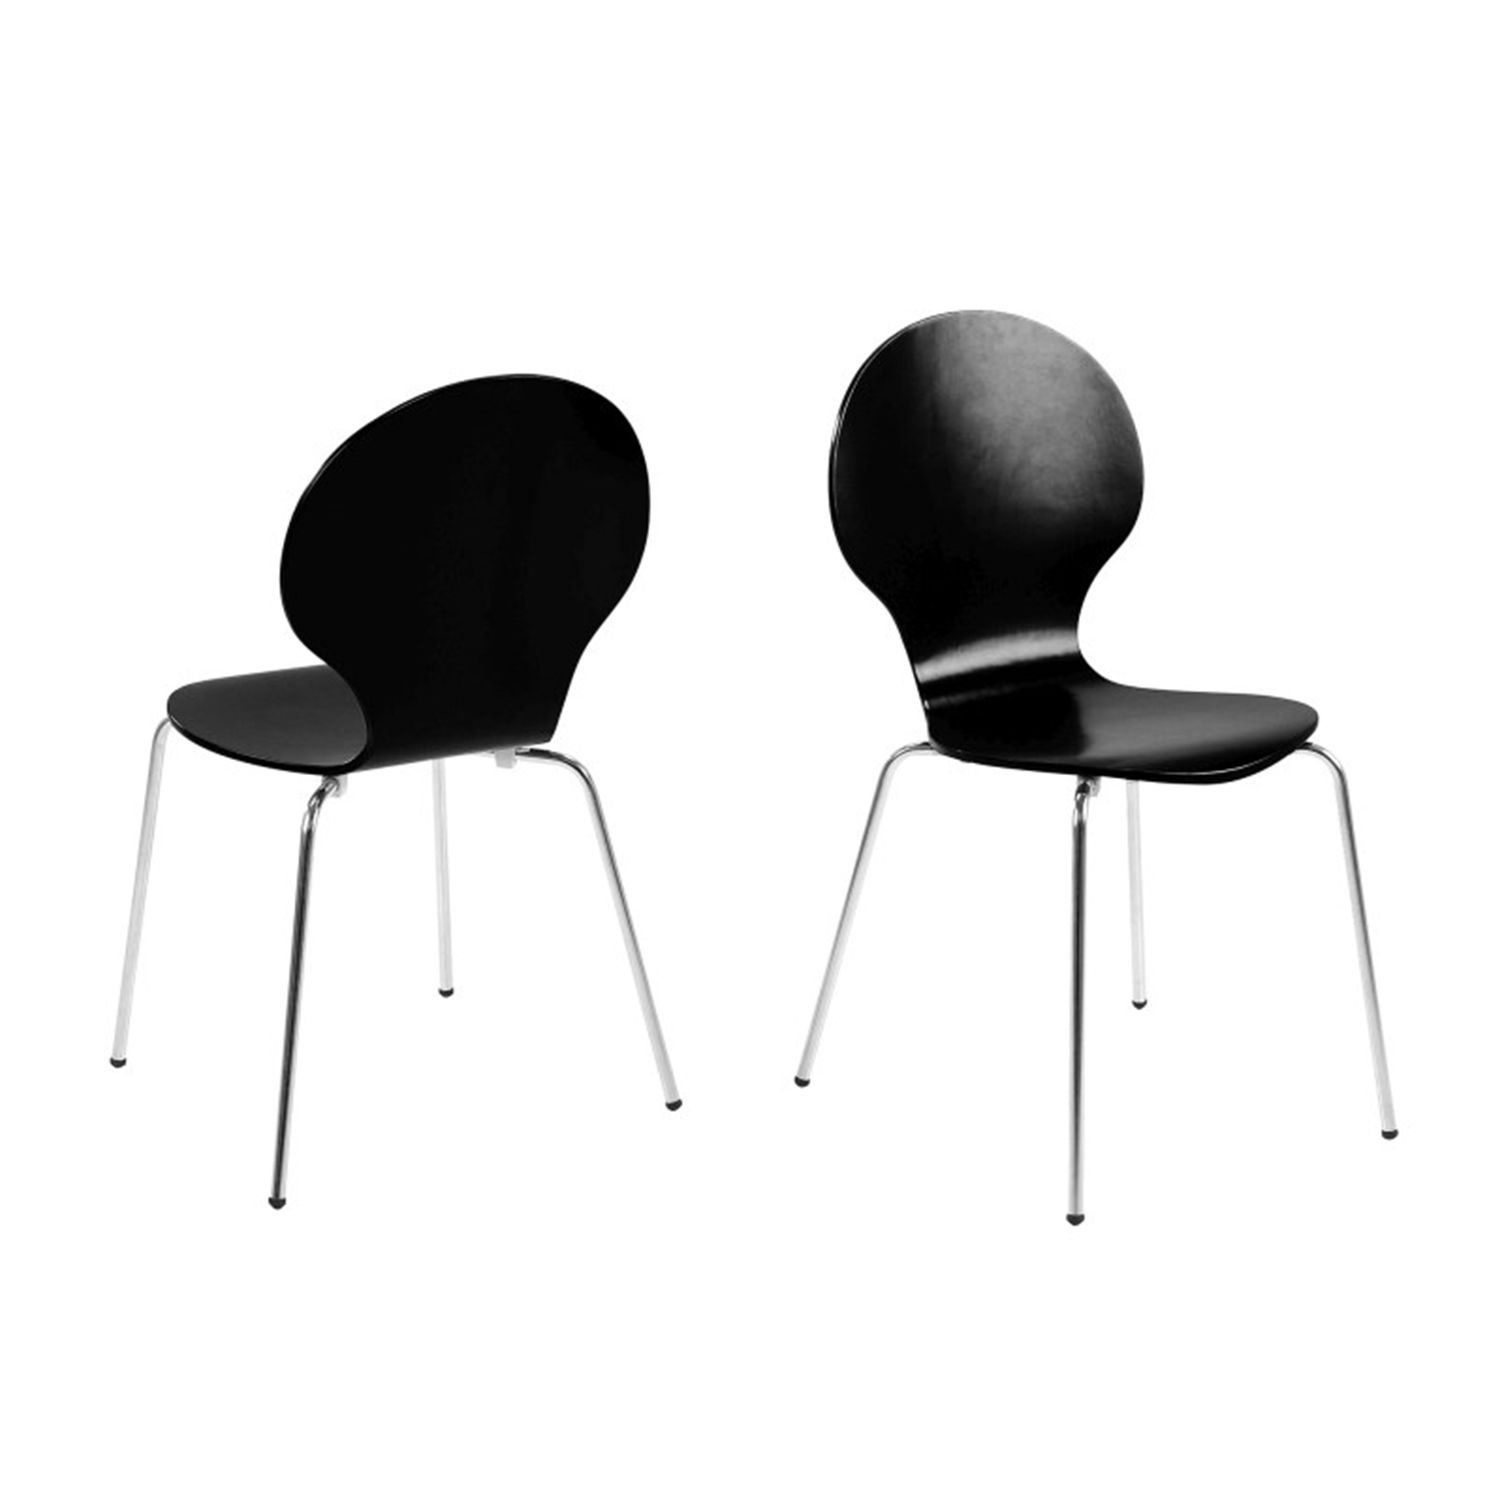 Hugo Dining Chairs Set Of 1, 2, 4, 6 or 8 - Various Colours (Colour: Black, Number of Chairs: 4)